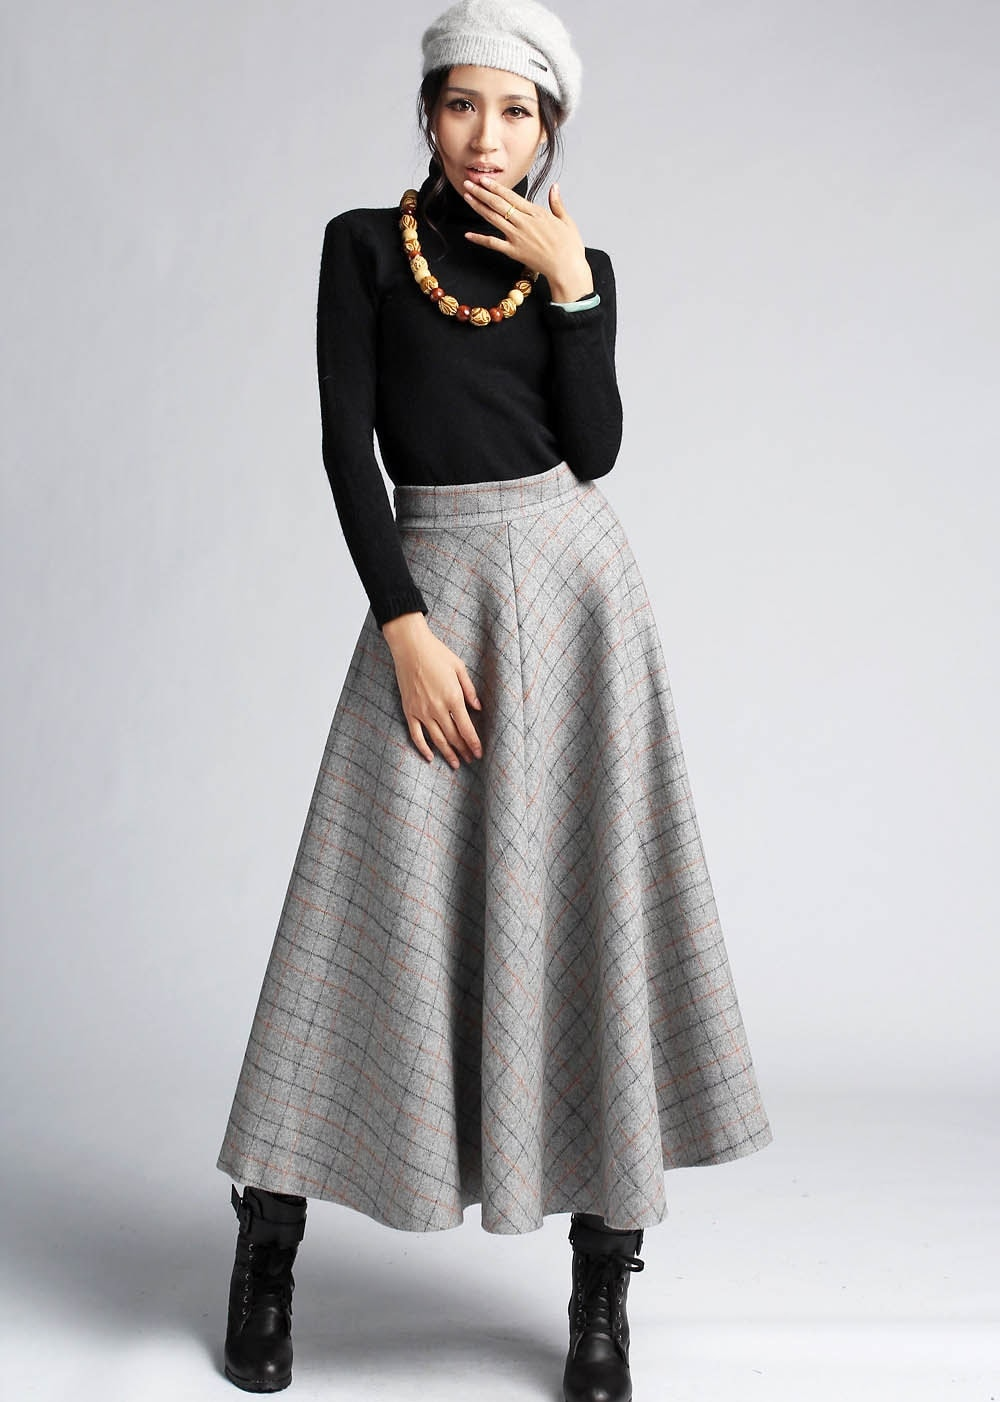 gray plaid wool skirt maxi long classic style winter by